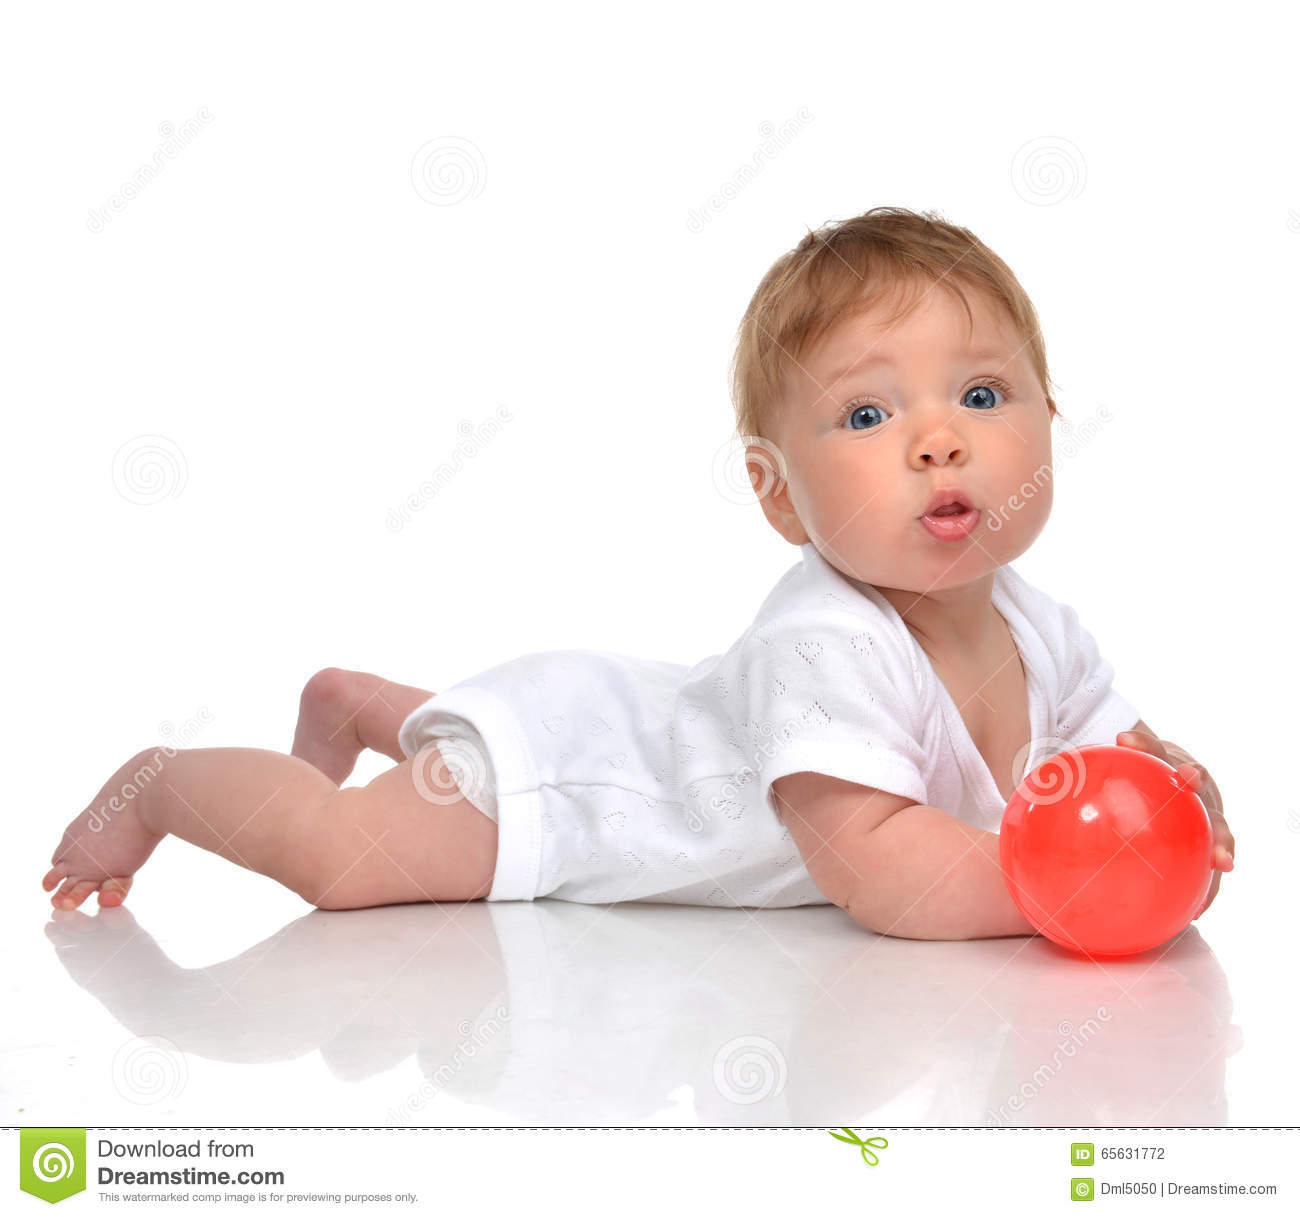 Floor Plans Free Infant Child Baby Boy Toddler Playing With Red Ball Toy In